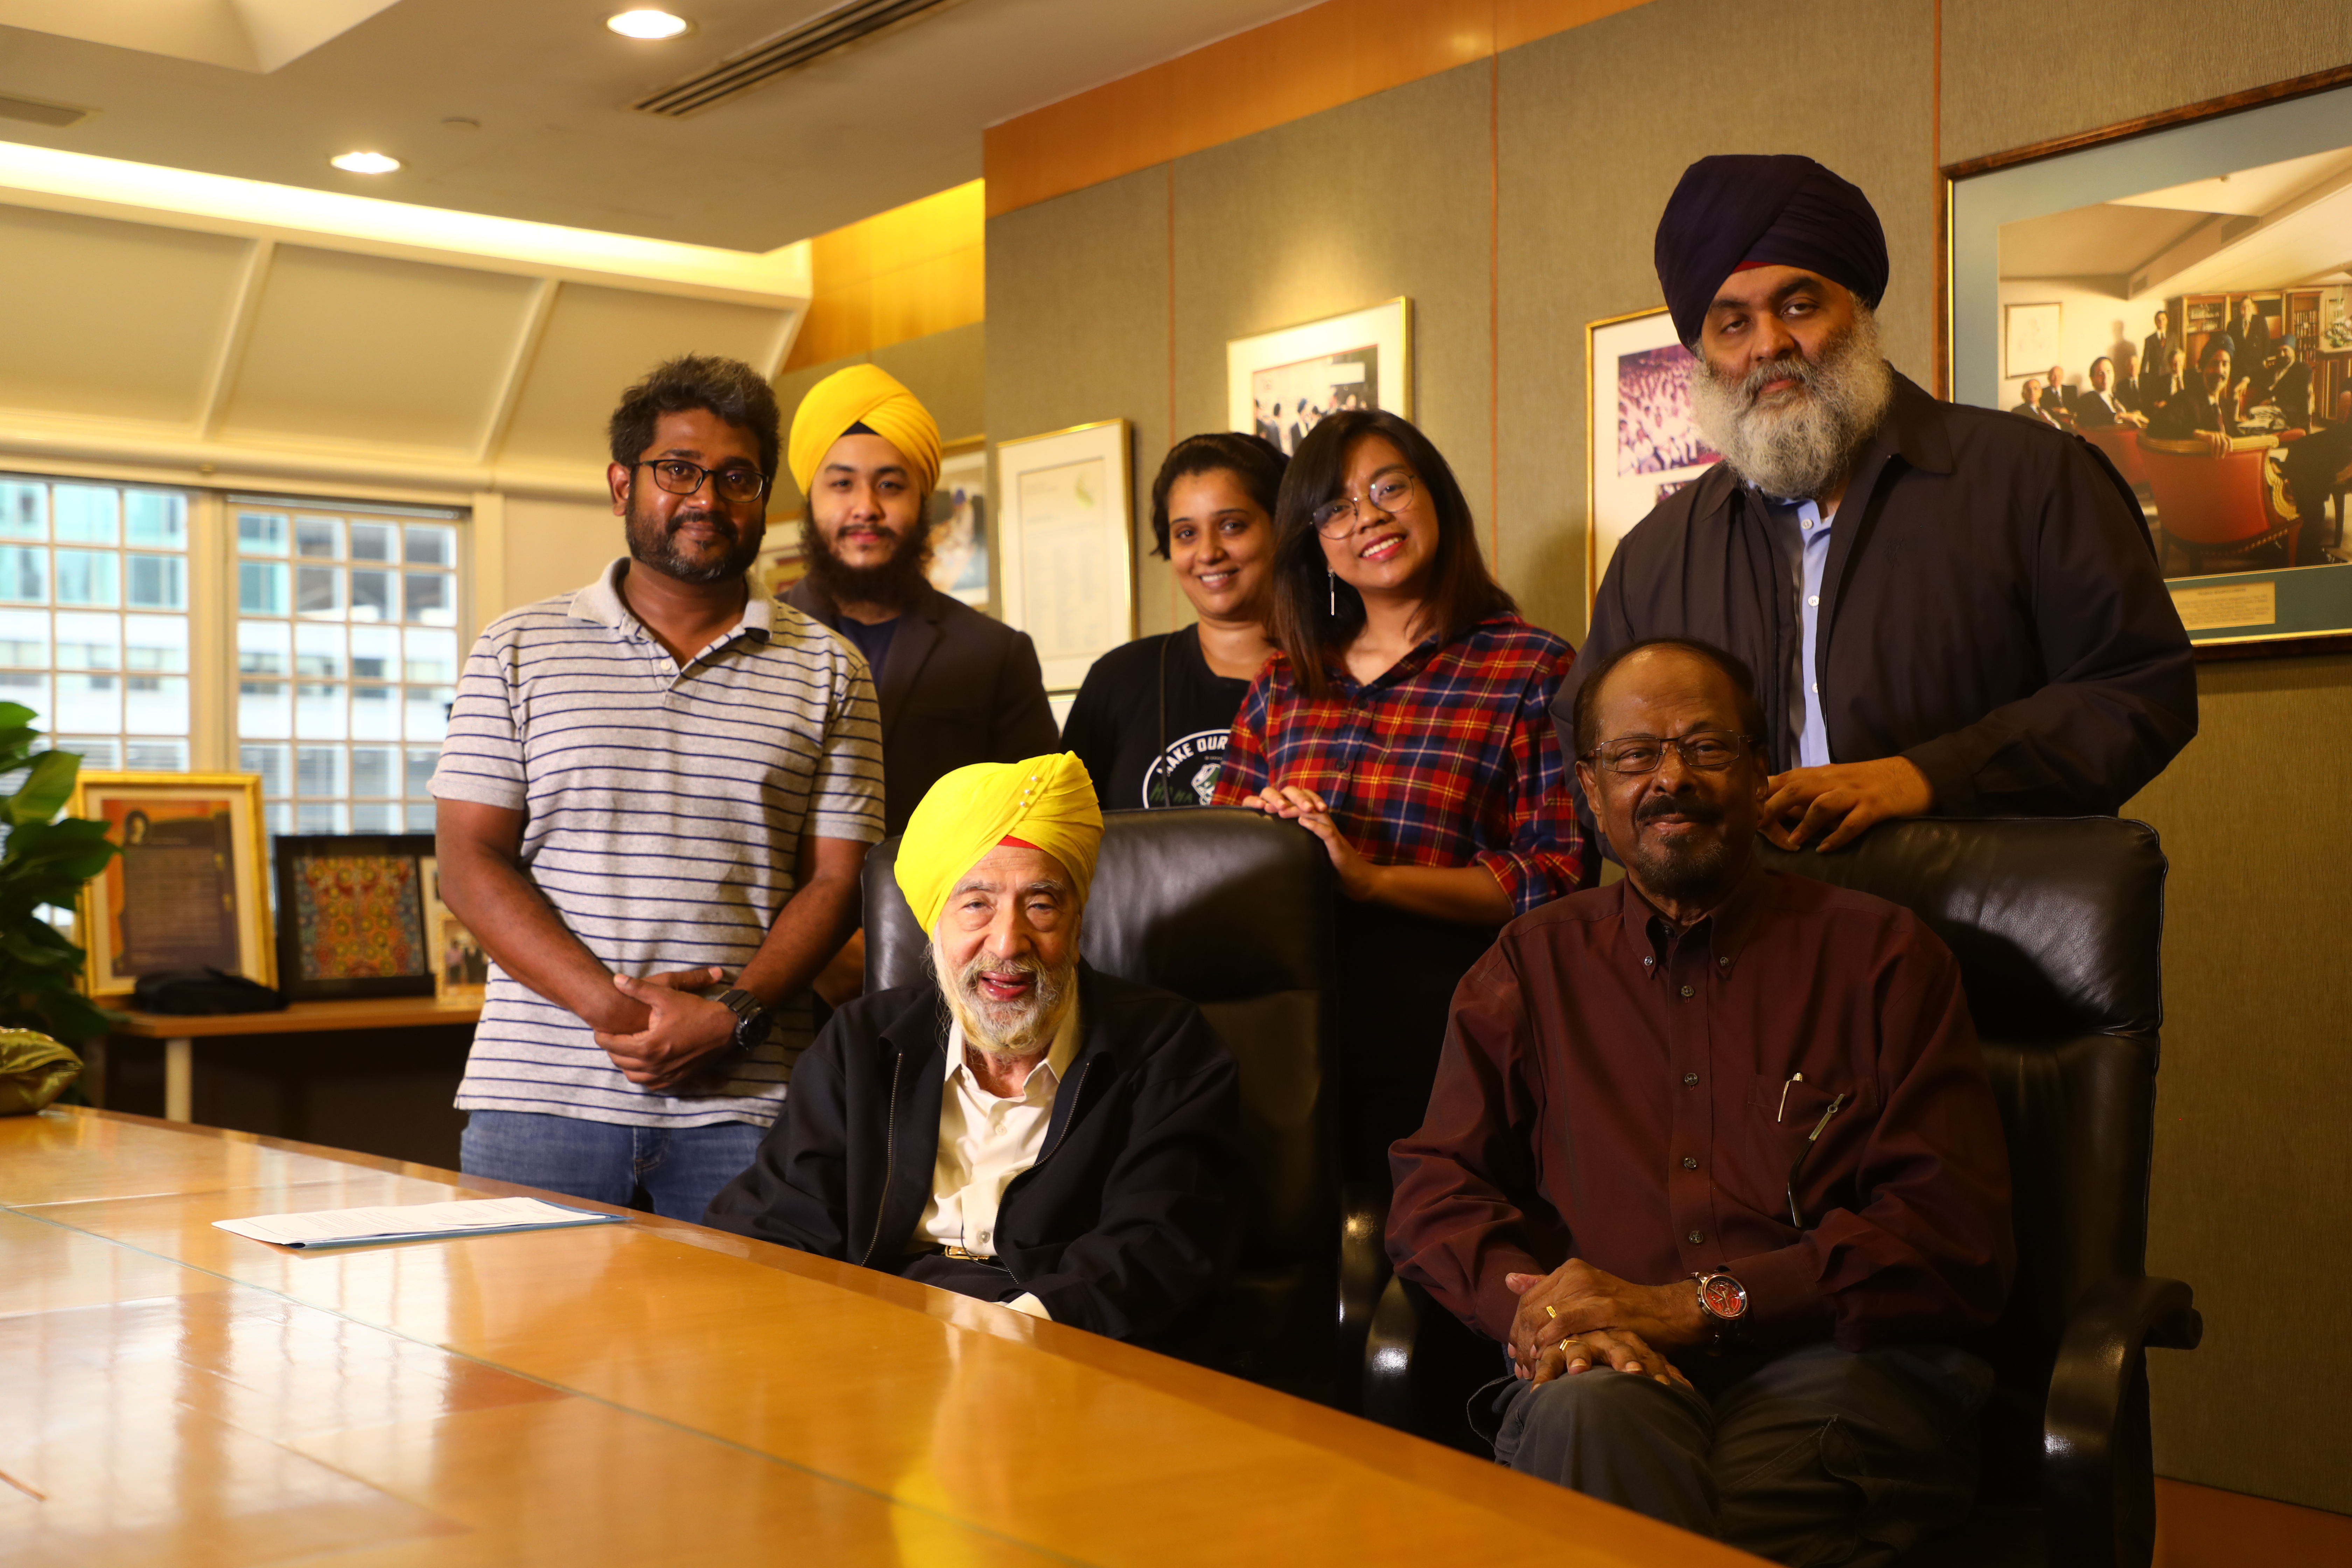 The cast and crew of Suvadugal with KArtar Singh Thakral. Photo courtesy: VisualBeatz